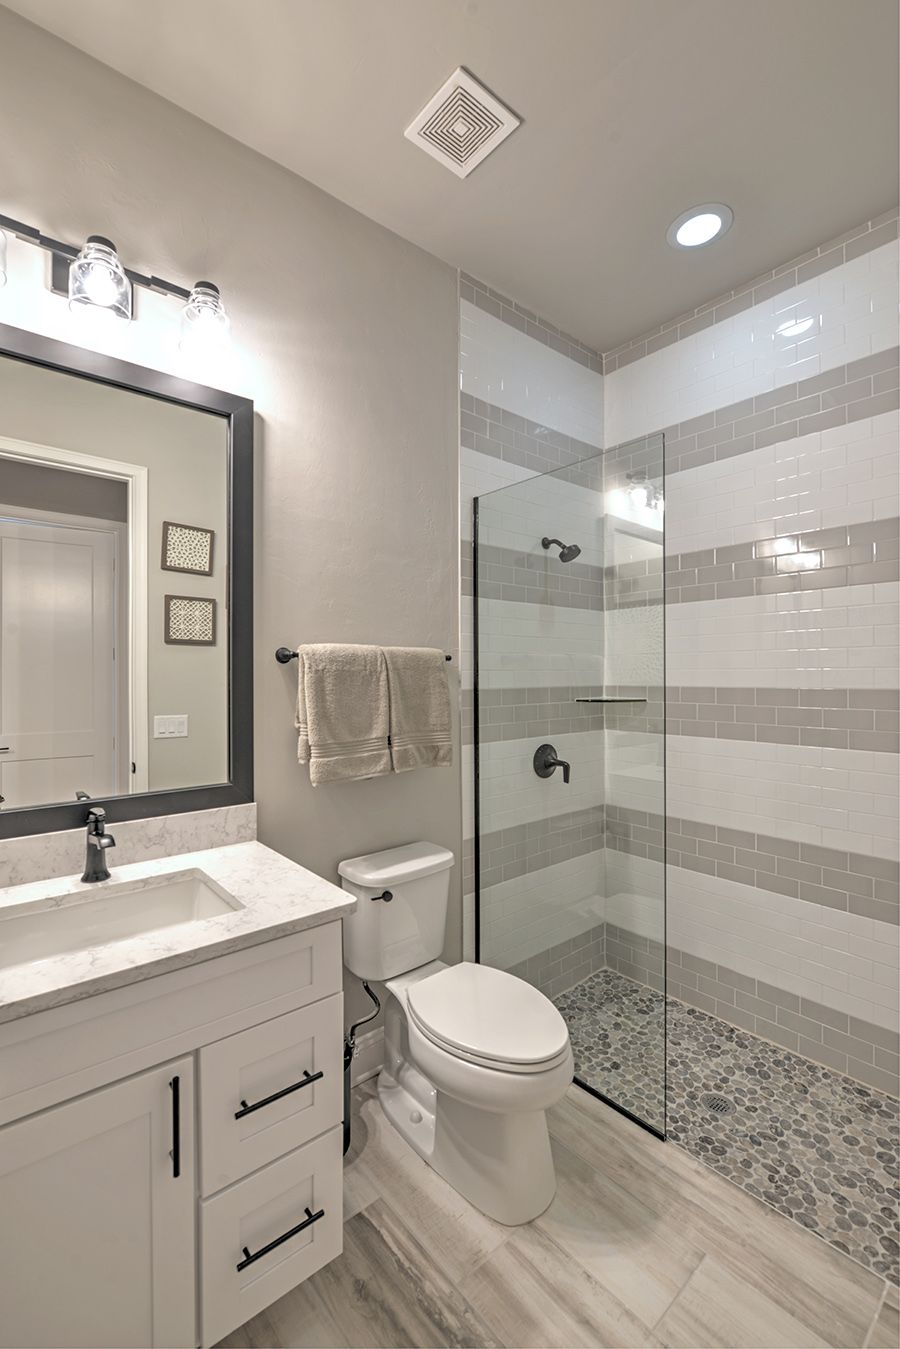 Bathroom featured in the Arden By ICI Homes in Jacksonville-St. Augustine, FL